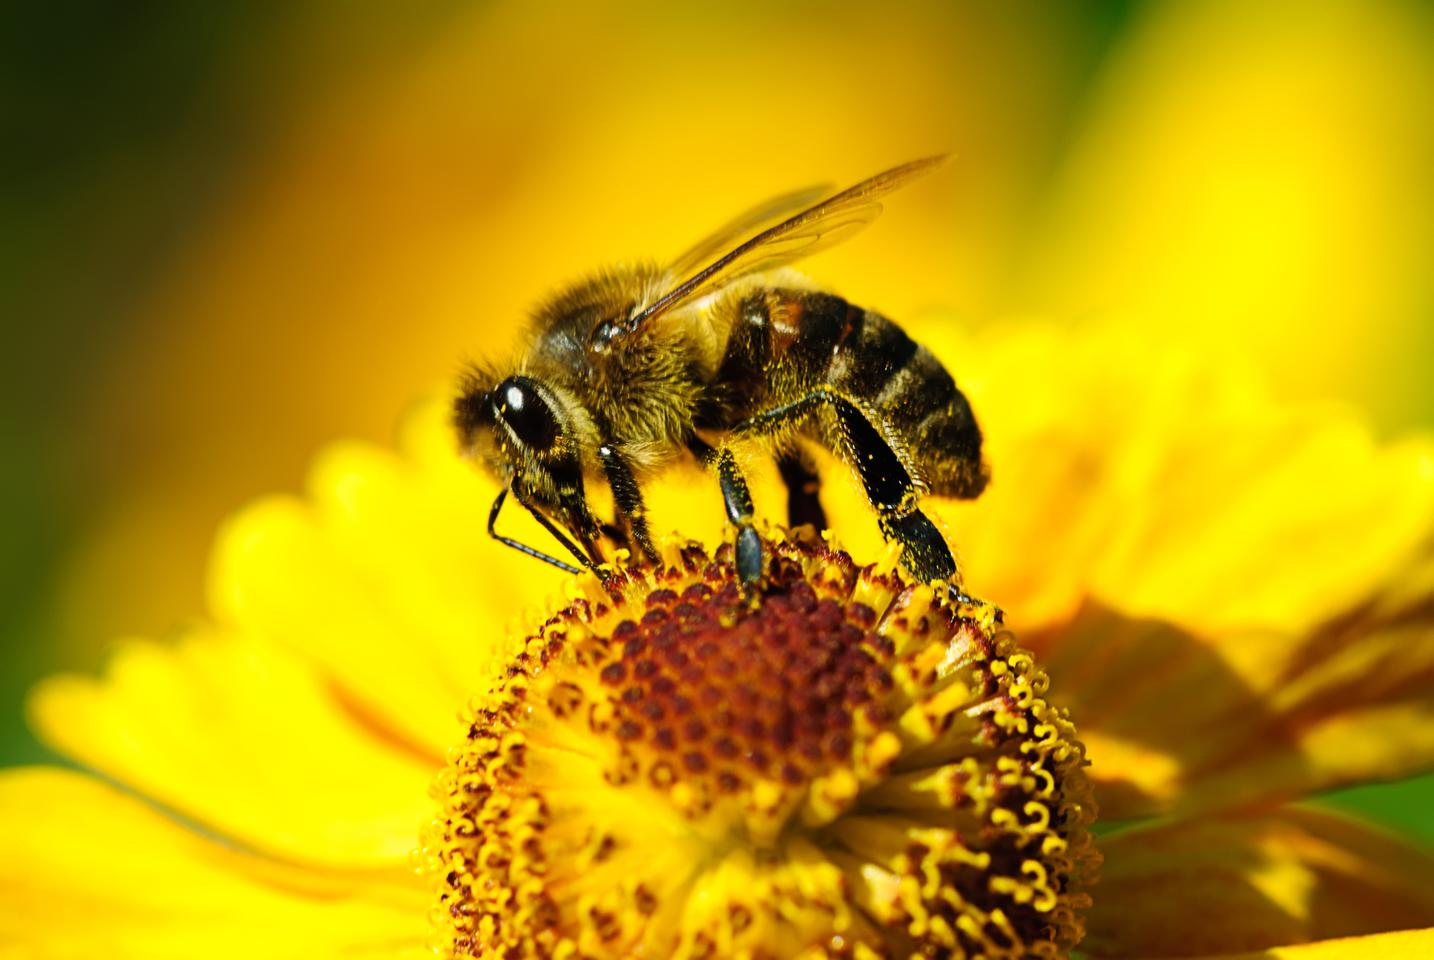 Researchers found bees primed with caffeine-laced odors in their nest better targeted flowers with those odors when released